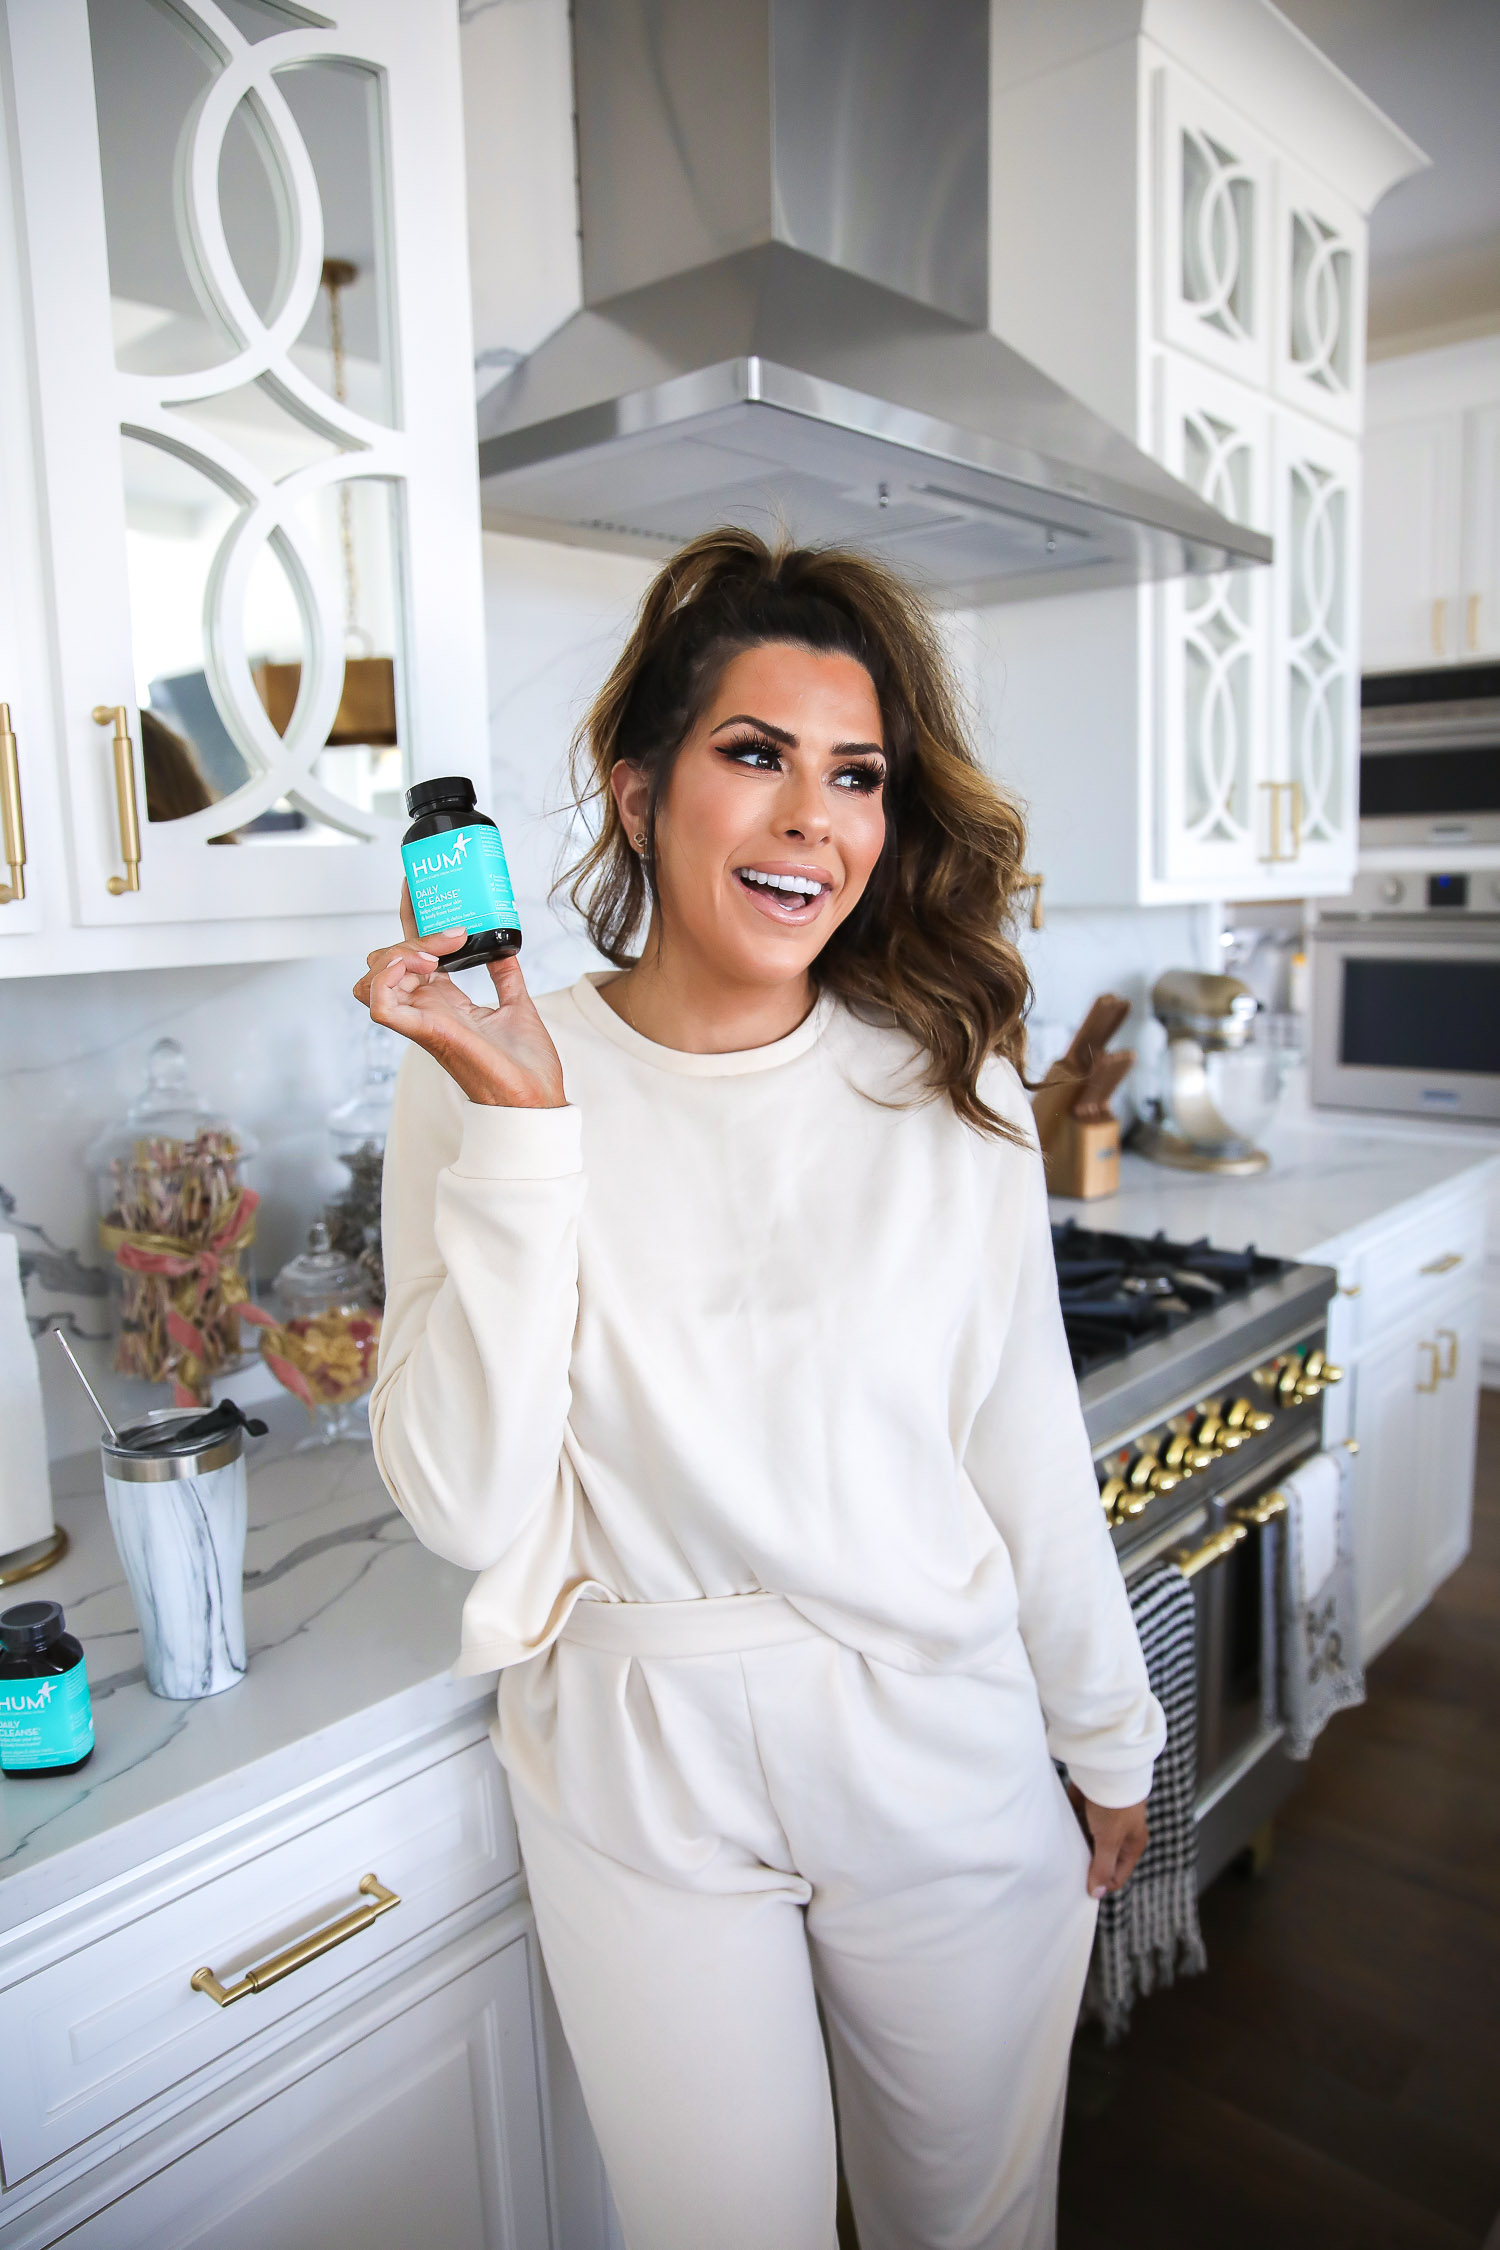 hum nutrition daily cleanse supplements, skin clearing vitamins, green algae vitamins, emily gemma skincare routine | Hum Daily Cleanse by popular US lifestyle blog, The Sweetest Thing: image of a woman wearing a cream colored lounge set and holding a bottle Hum Daily Cleanse supplements.